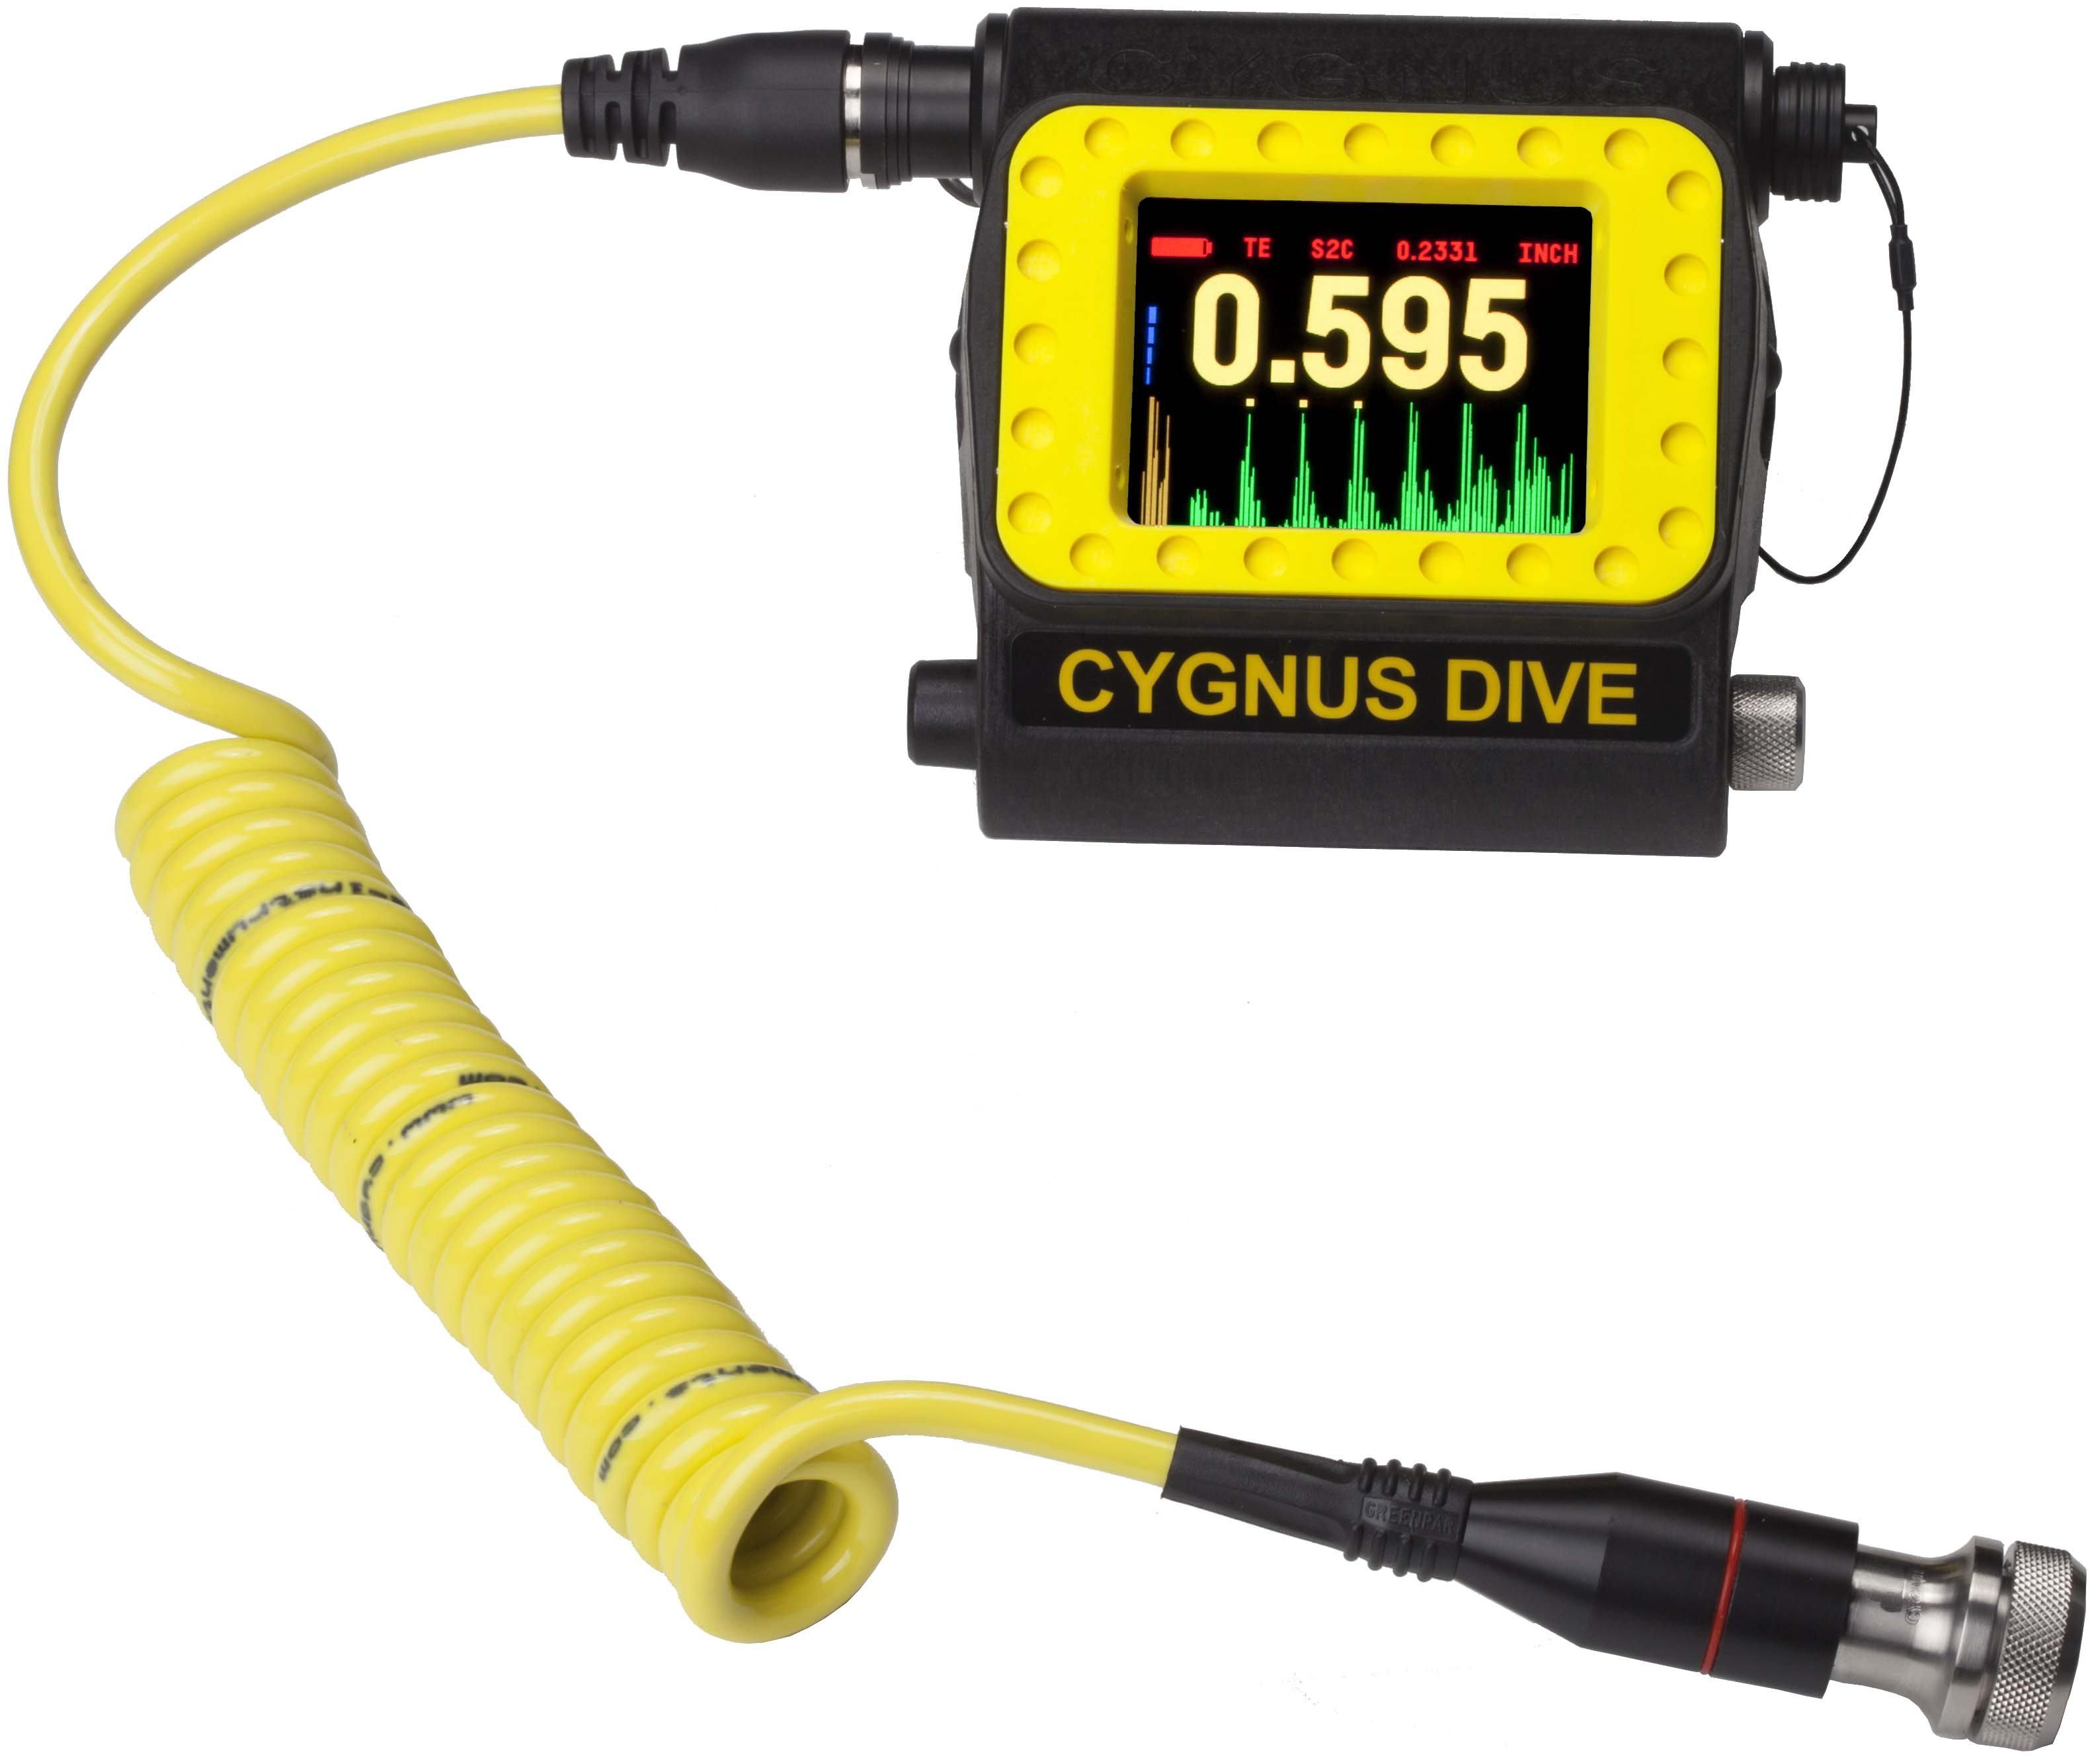 Ultrasonic Digital Thickness Gauge For Underwater Use Dive By Amprobes First Tier Advanced Circuit Tracer Basic Applications The Cygnus Uses Trusted Multiple Echo Technique Developed Over 25 Years Ago With Minimal Surface Preparation Will